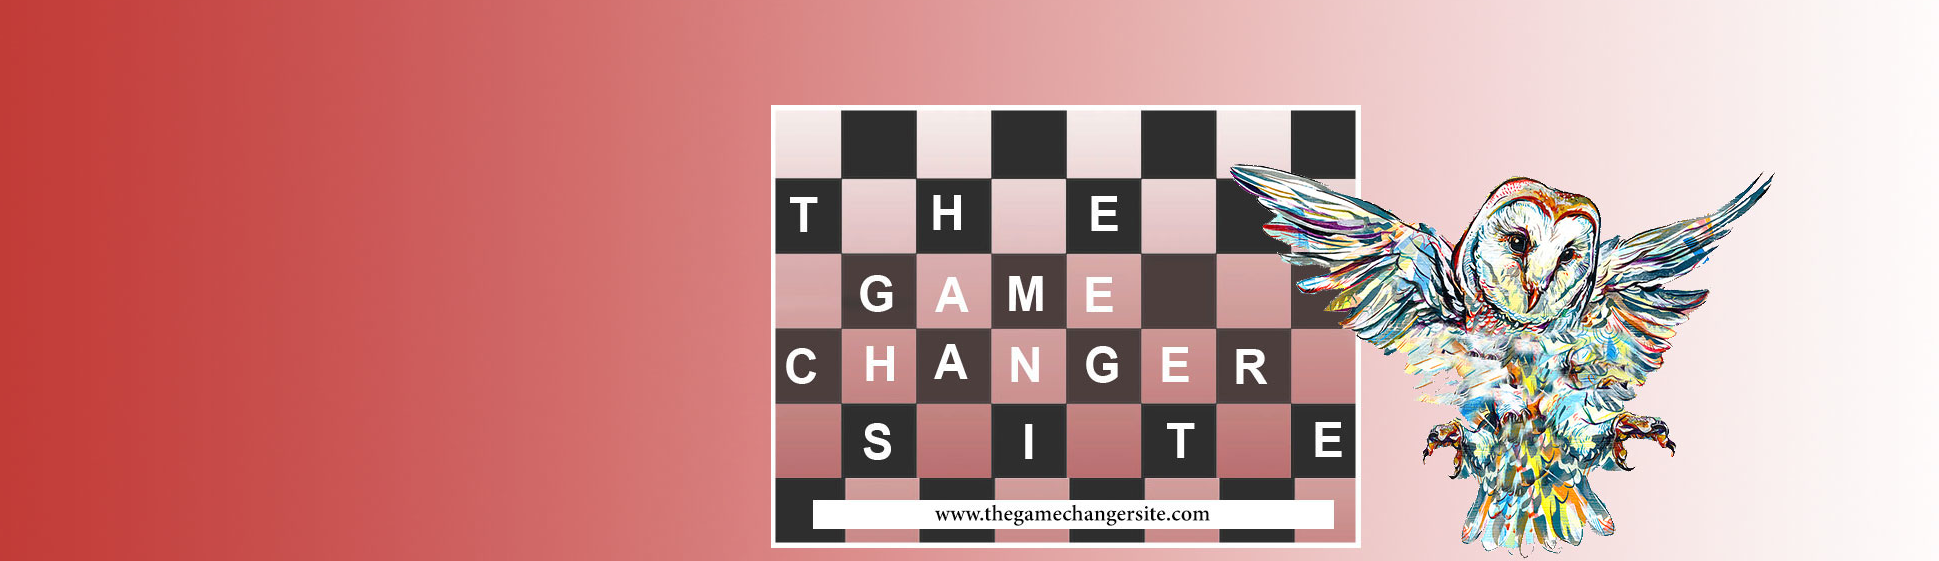 The Game Changer site